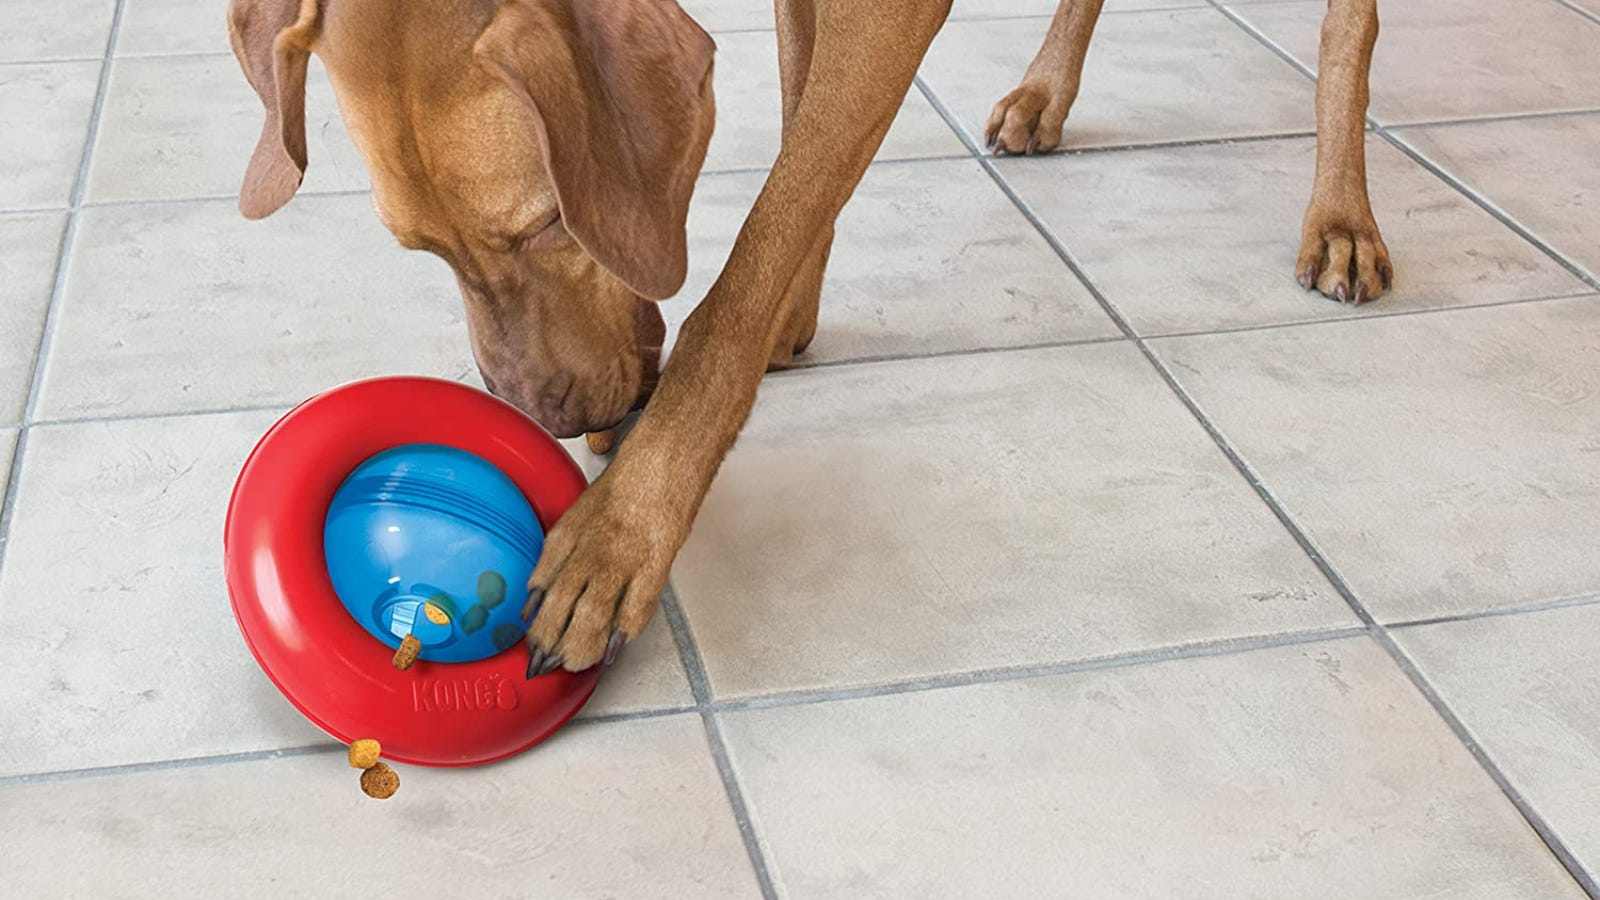 A brown dog playing with a blue and red toy that dispenses treats.